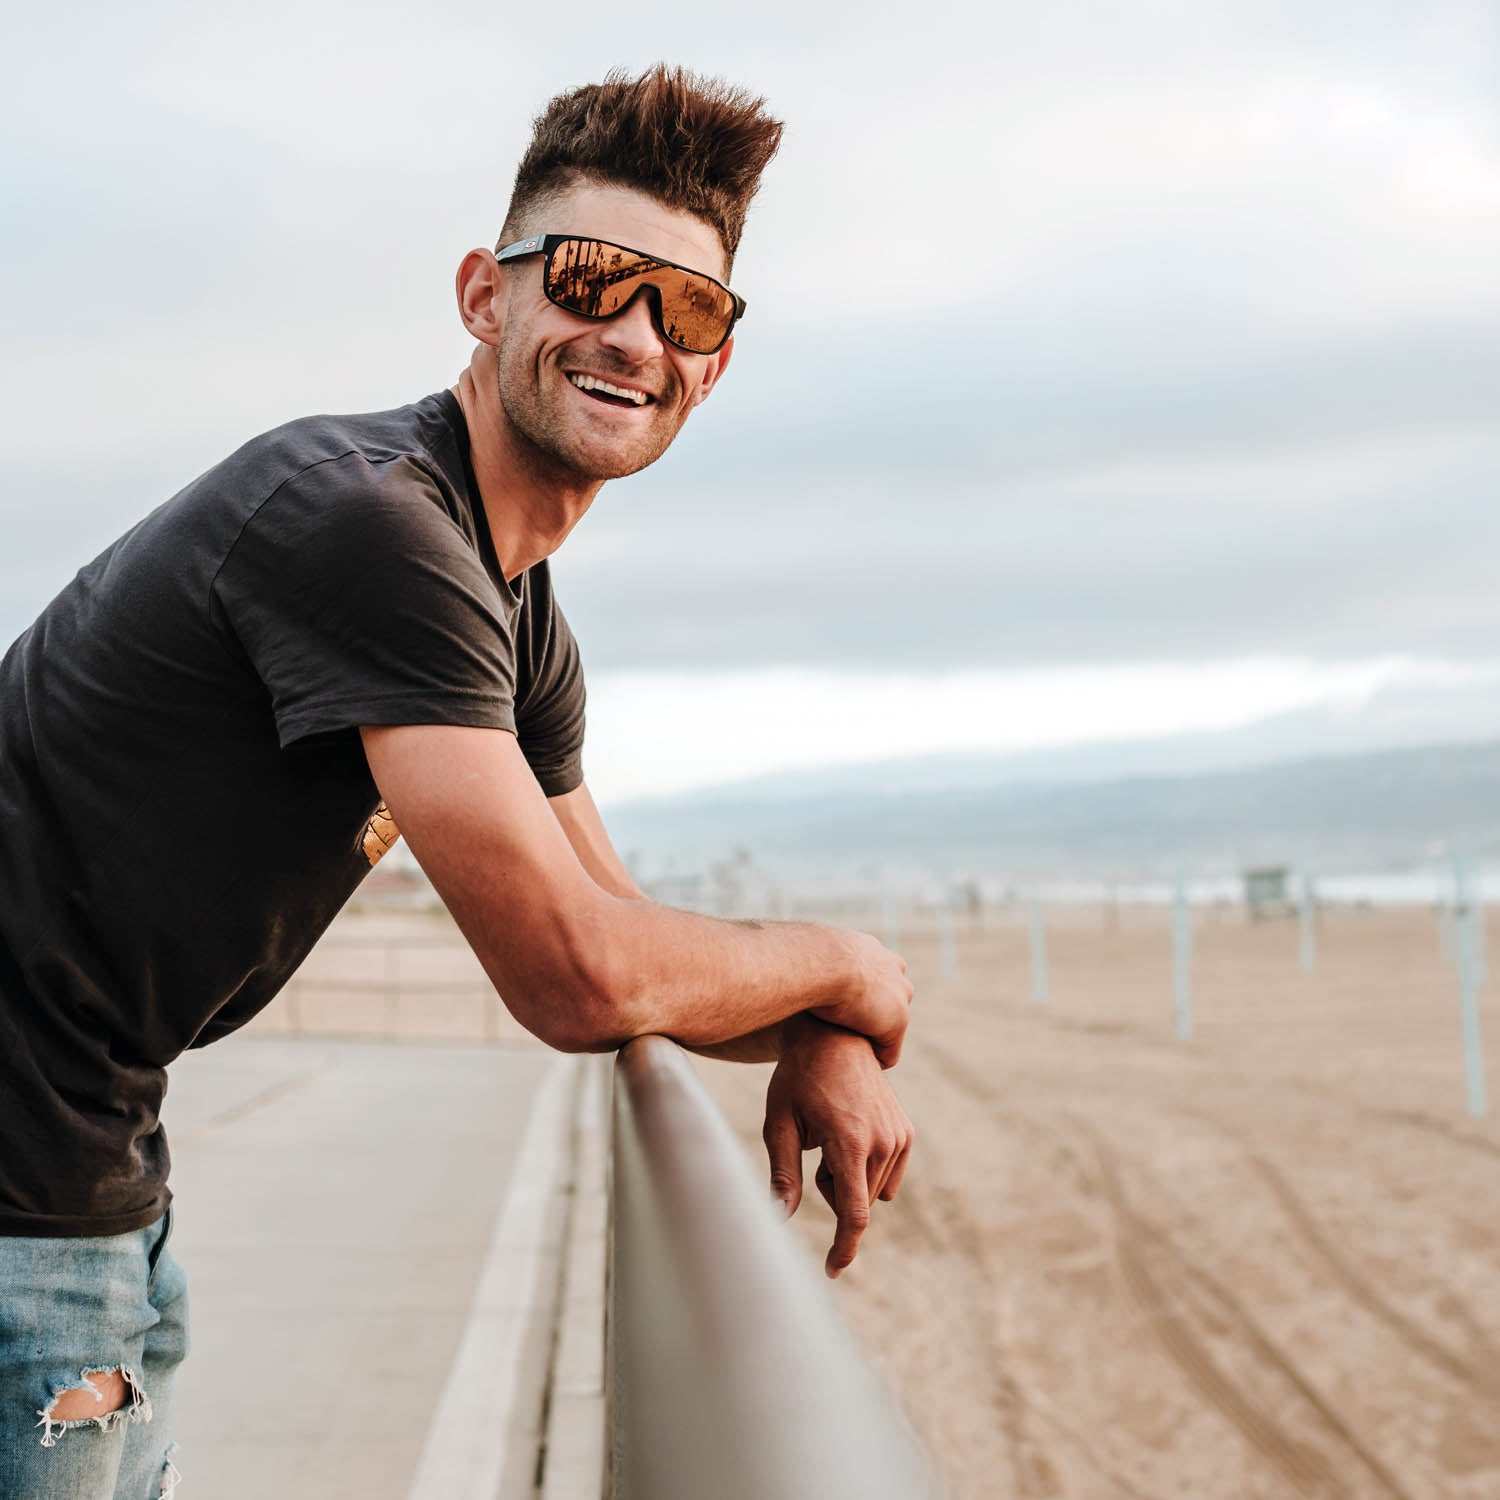 Eamon Lucas wearing sunglasses and leaning on a rail overlooking a beach